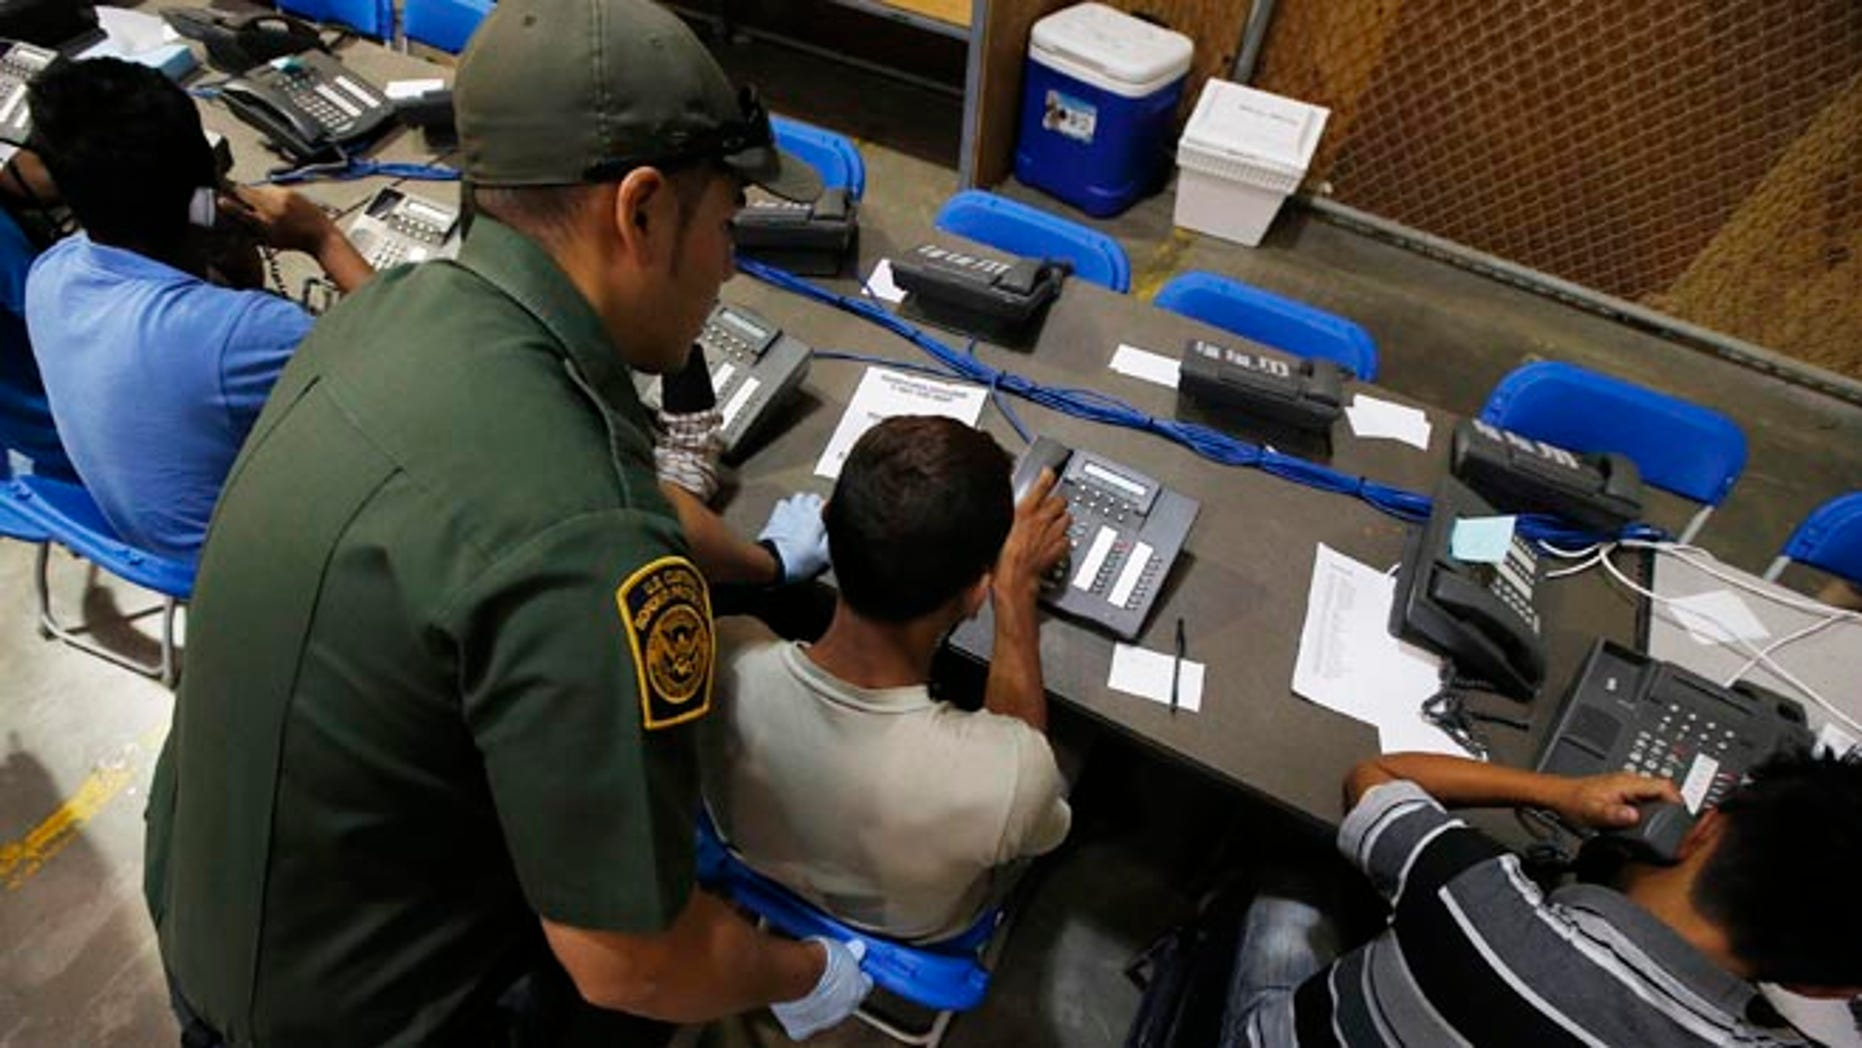 FILE: June 18, 2014: A Customs and Border Protection officer helps youths make calls, at the agency's Nogales, Ariz., facility.